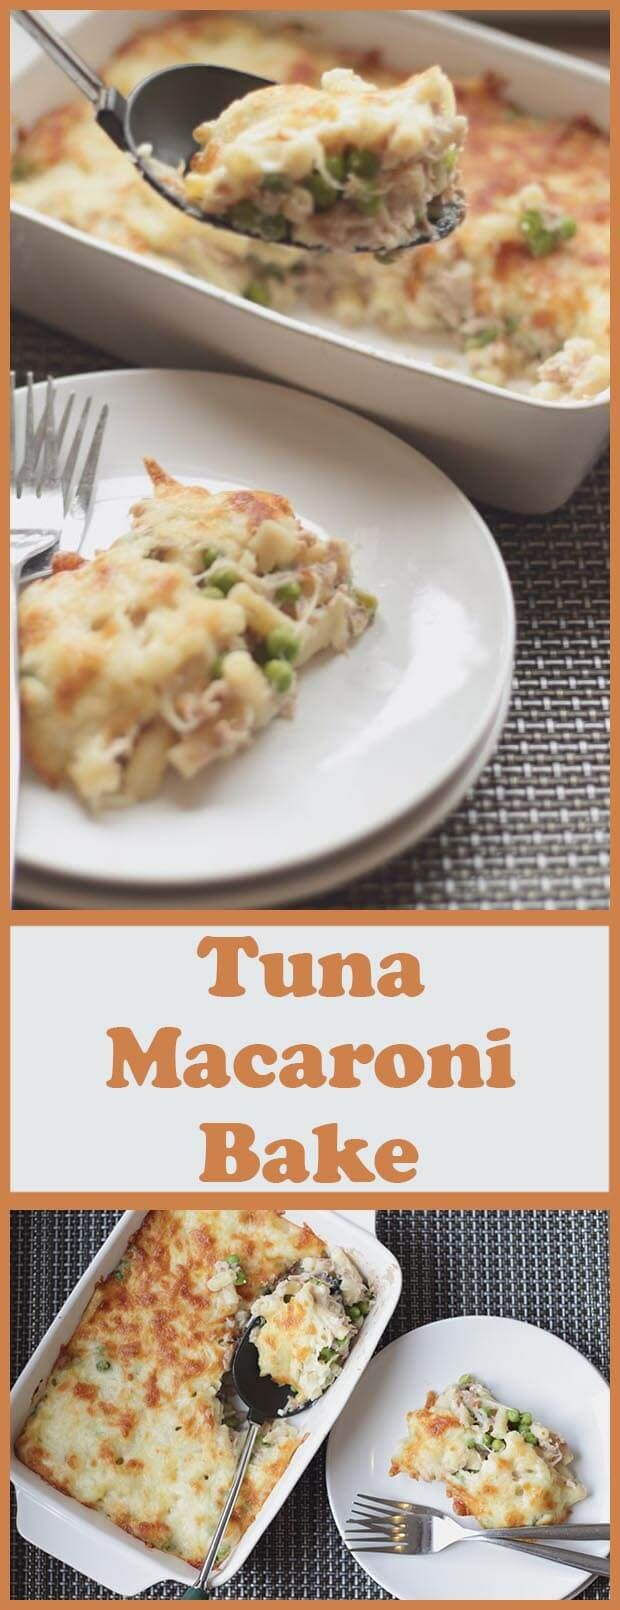 Tuna macaroni bake. This is a simple, tasty and low cost family bake for four. One that definitely fits into your favourite category of low cost, quick healthy meals! #Macaroni #Tasty #Quick